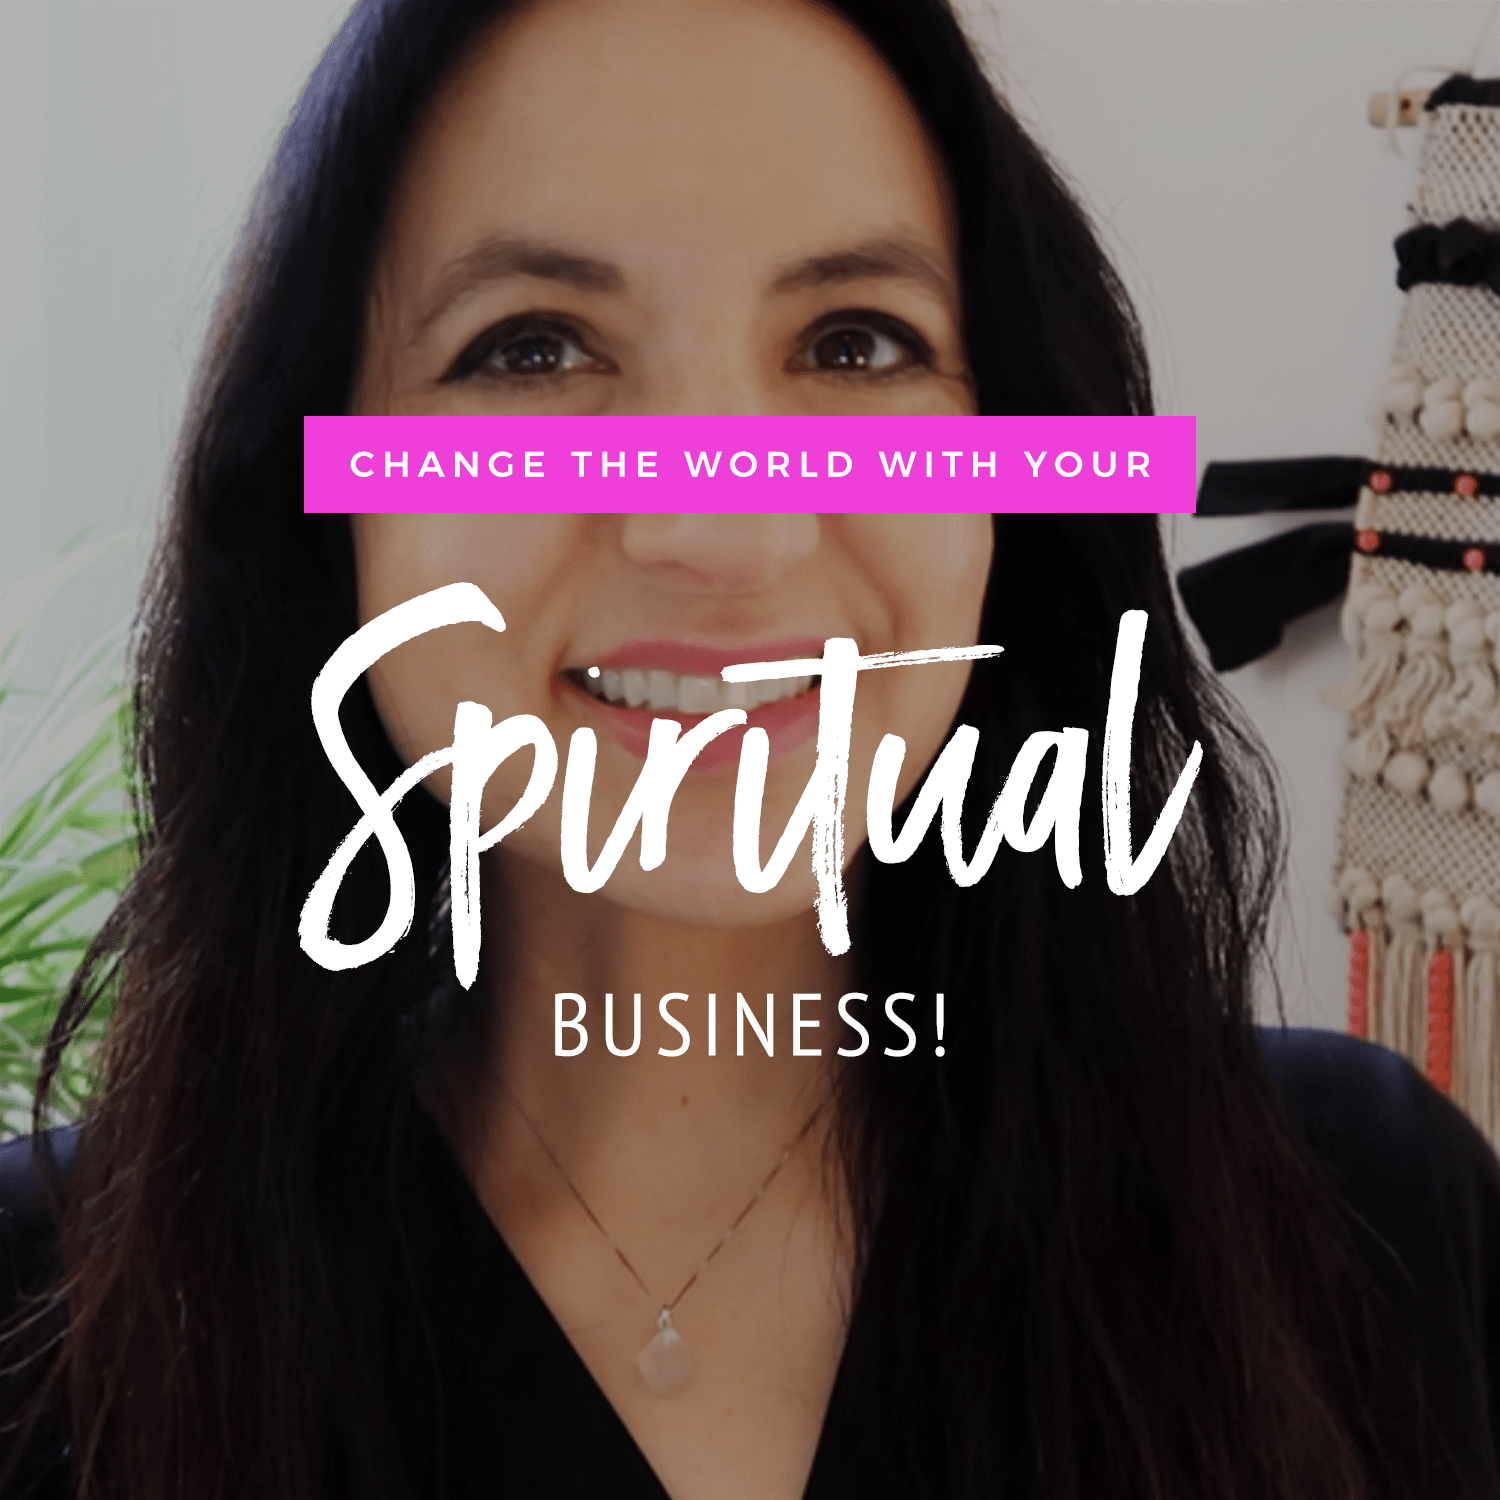 Change The World With Your Spiritual Business!